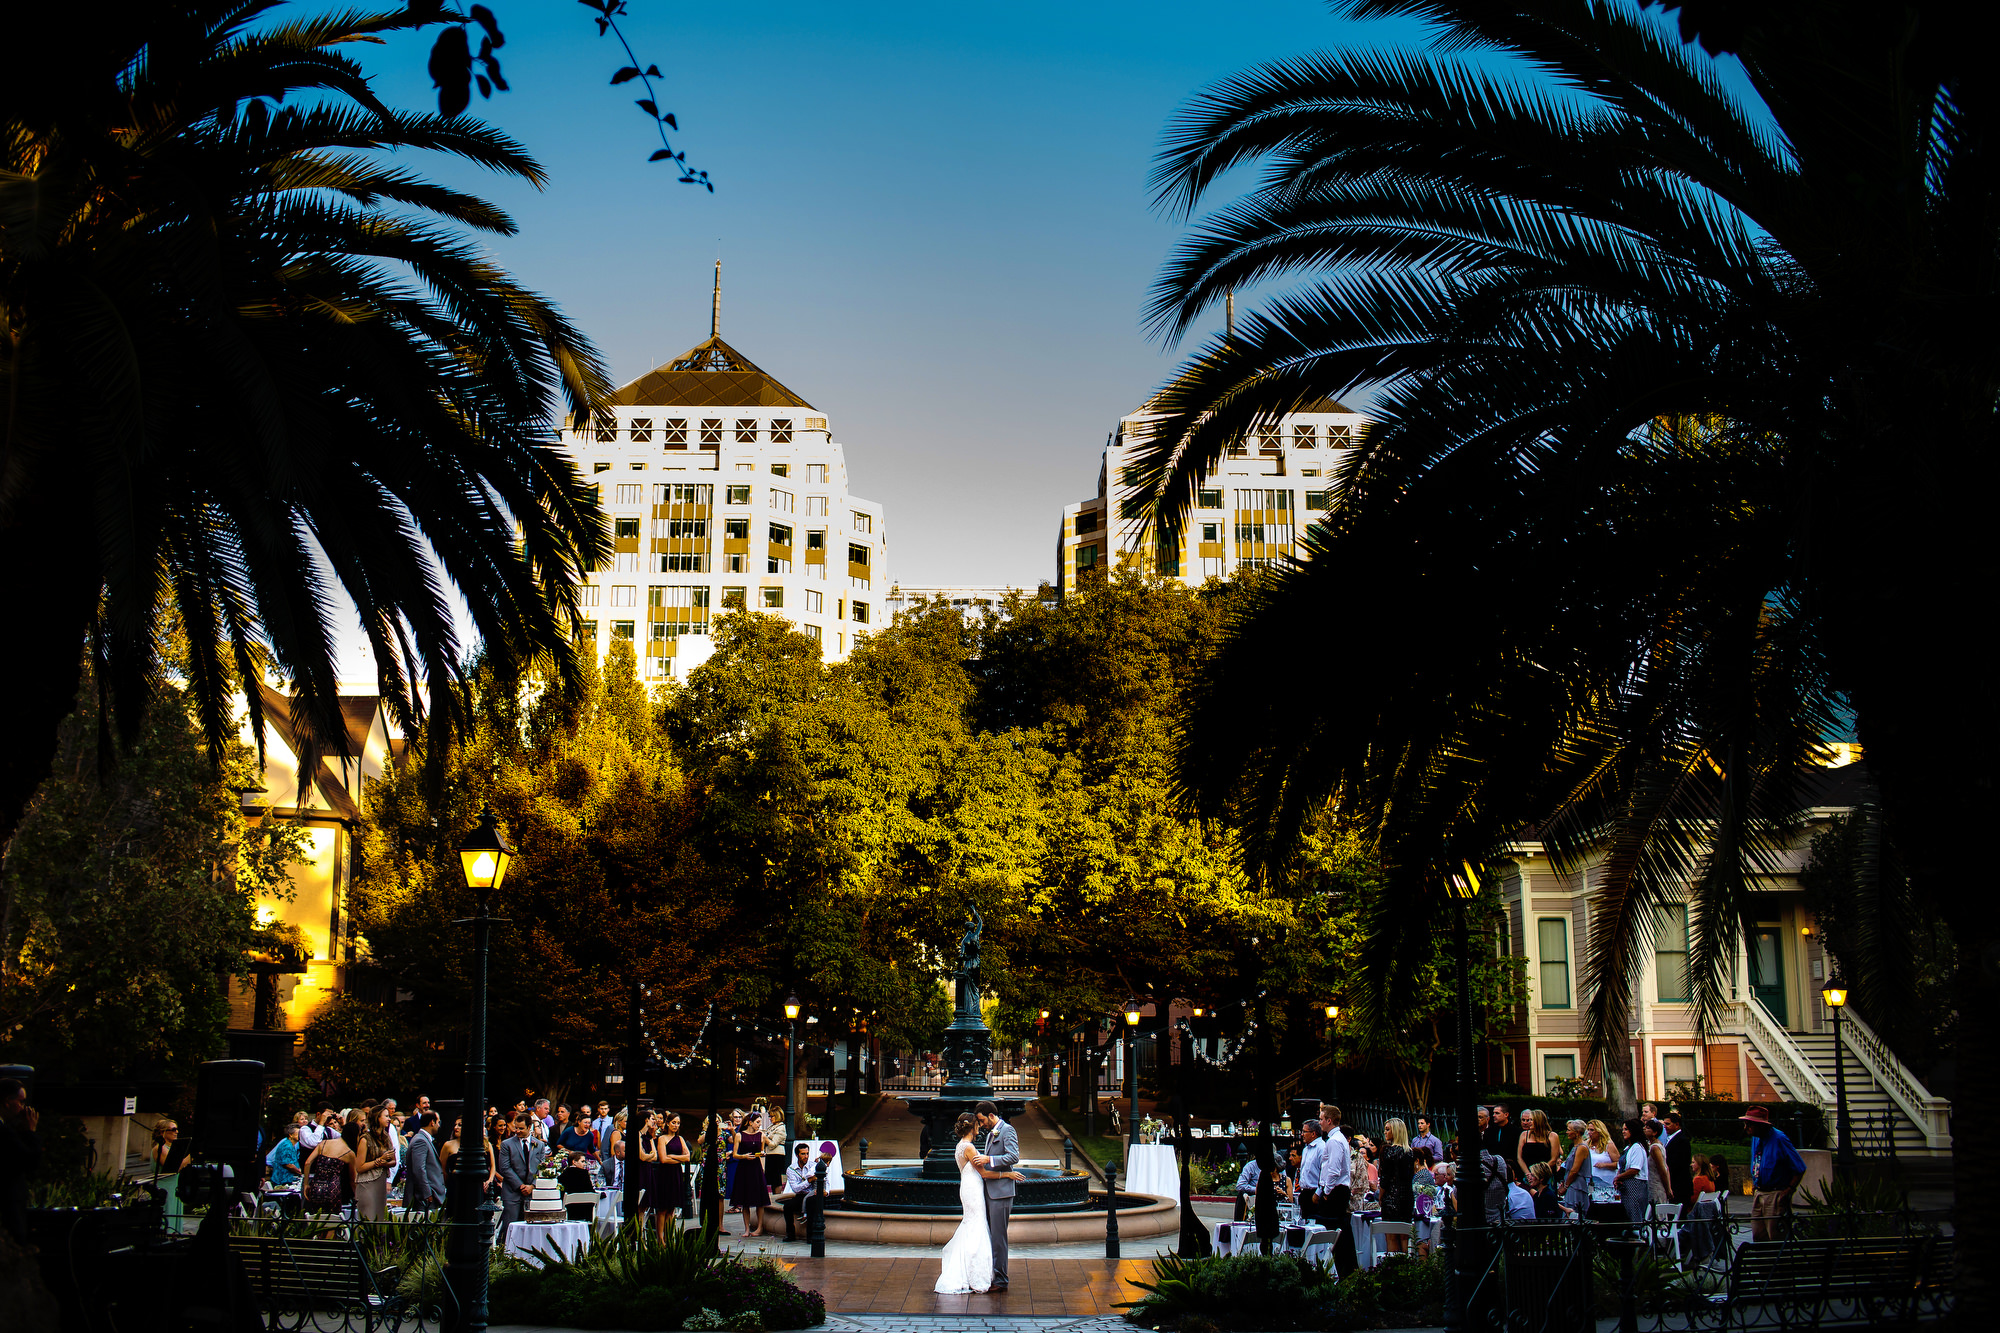 Outdoor wedding in Preservation Park in Oakland, California by destination wedding photographers, Daniel and Lindsay Stark of Stark Photography. (19)